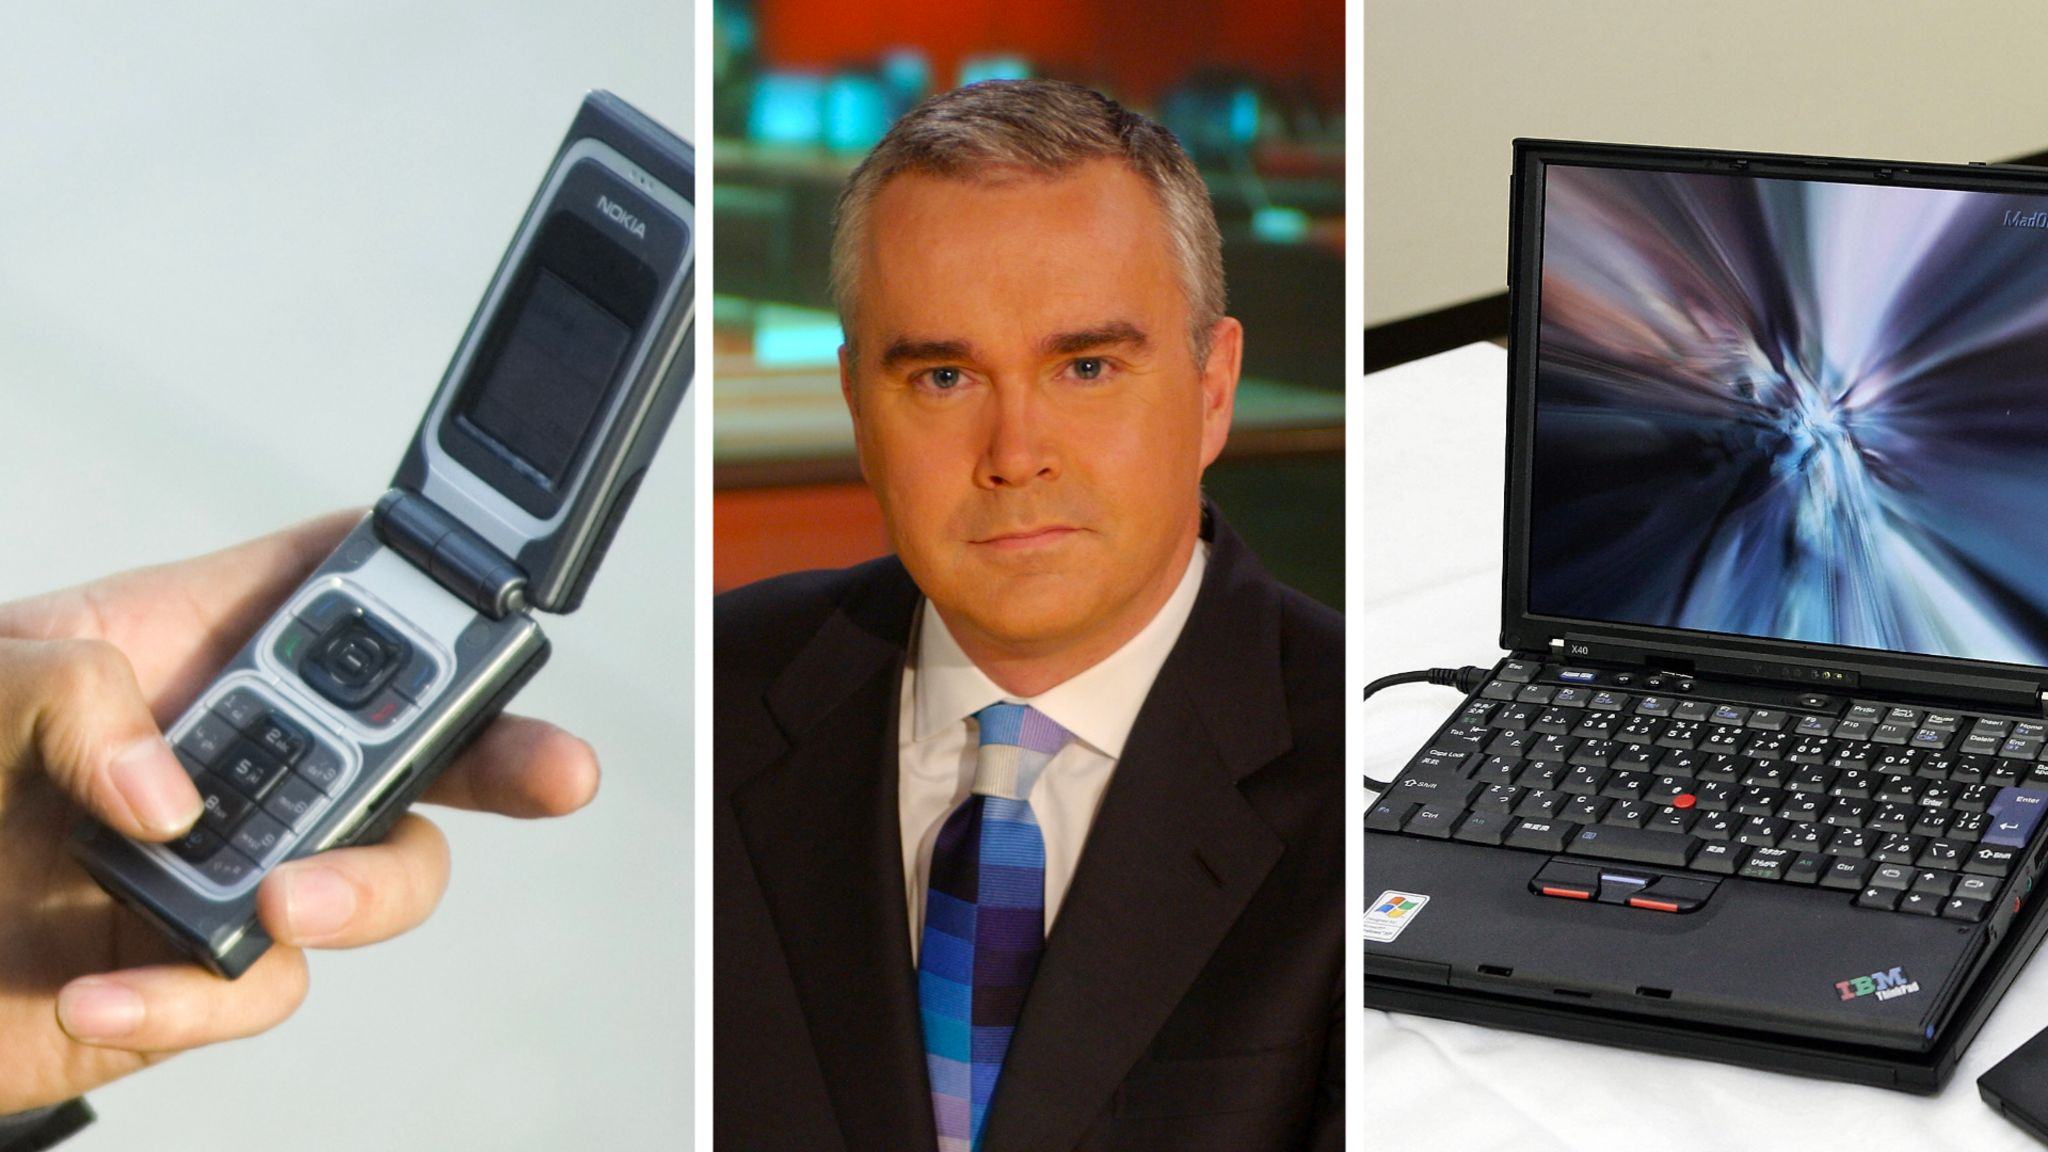 A mobile phone, Huw Edwards and laptop in 2005